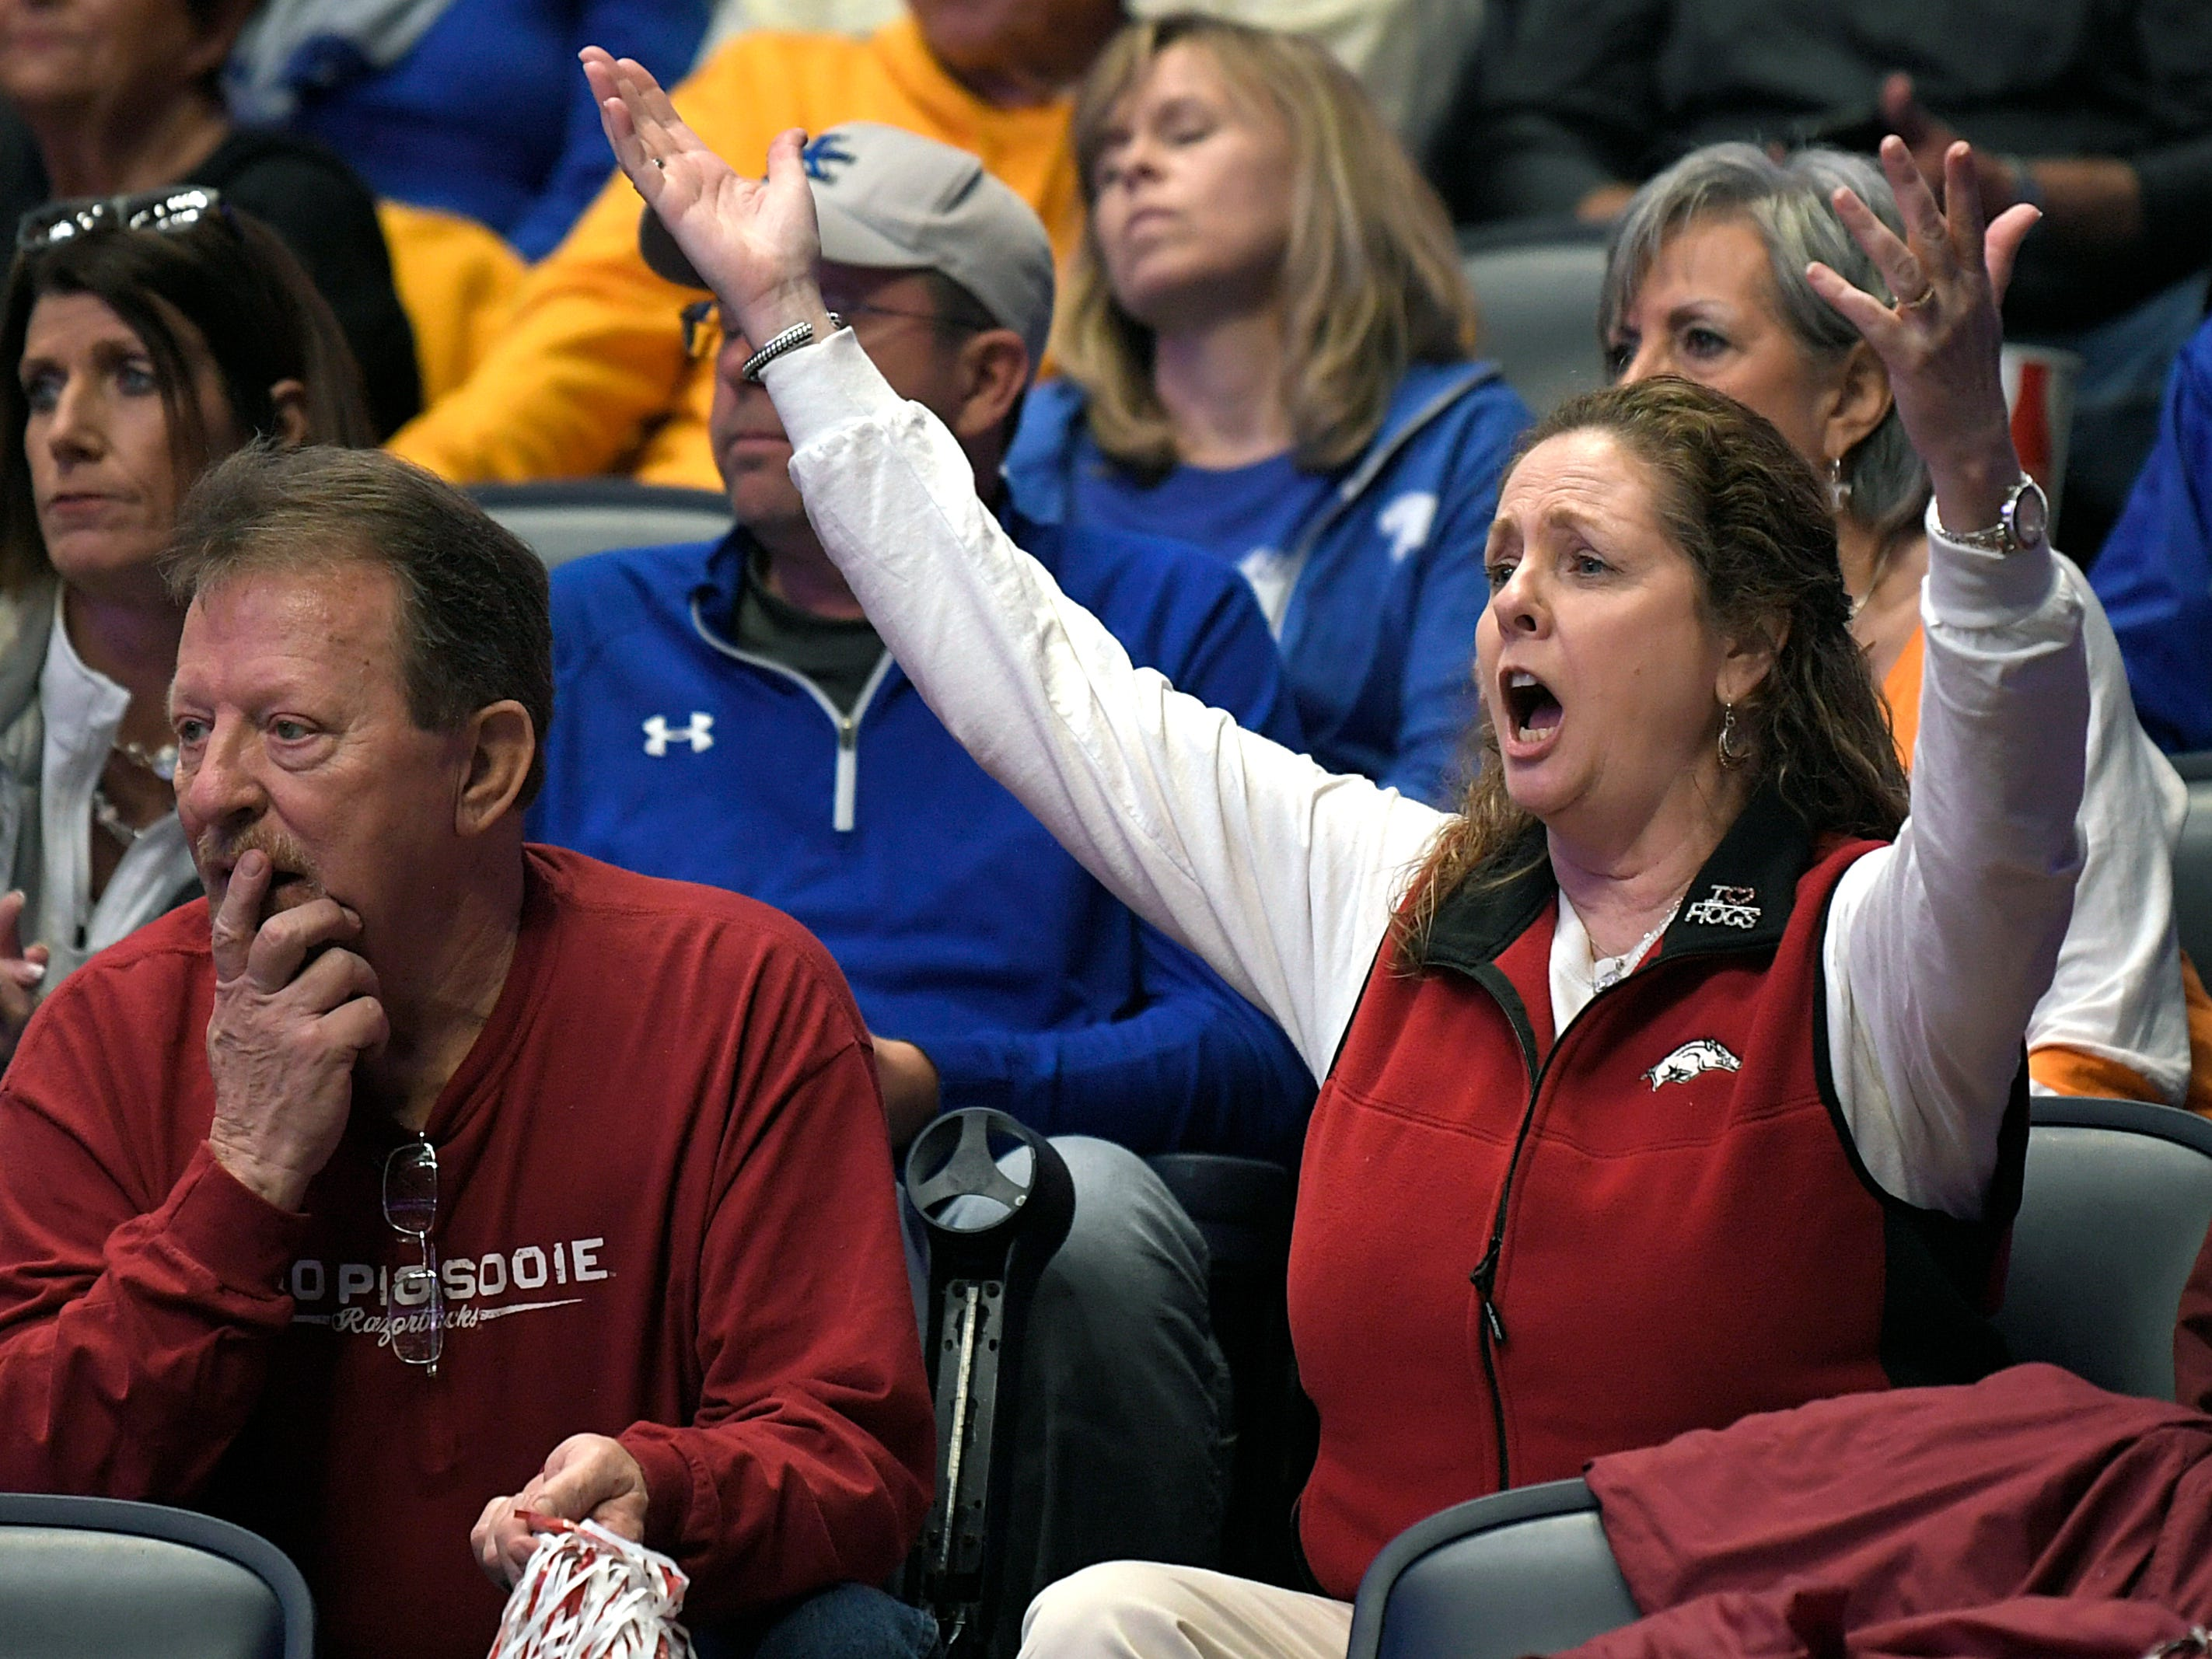 An Arkansas fans reacts to a play during the SEC Mens Basketball Tournament in Nashville on Thursday, March 14, 2019.